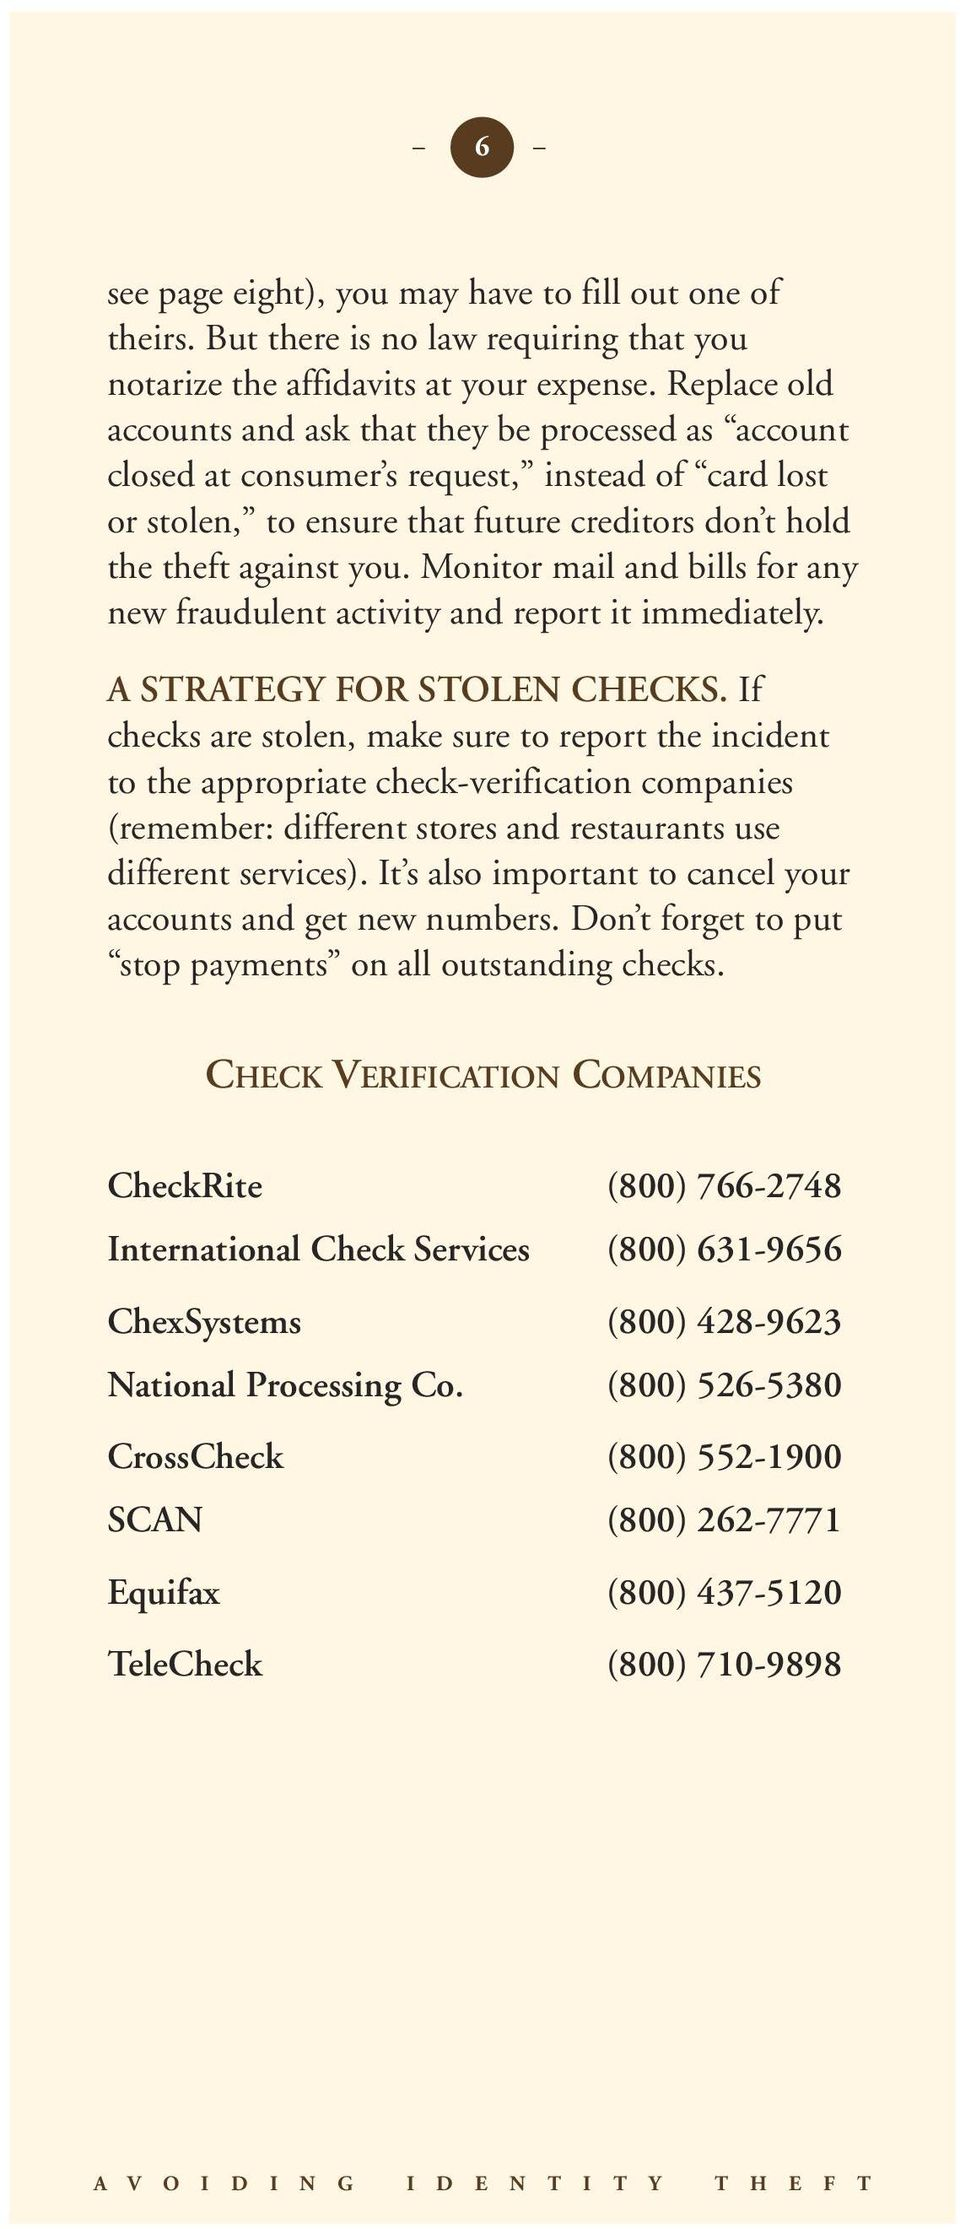 Monitor mail and bills for any new fraudulent activity and report it immediately. A STRATEGY FOR STOLEN CHECKS.